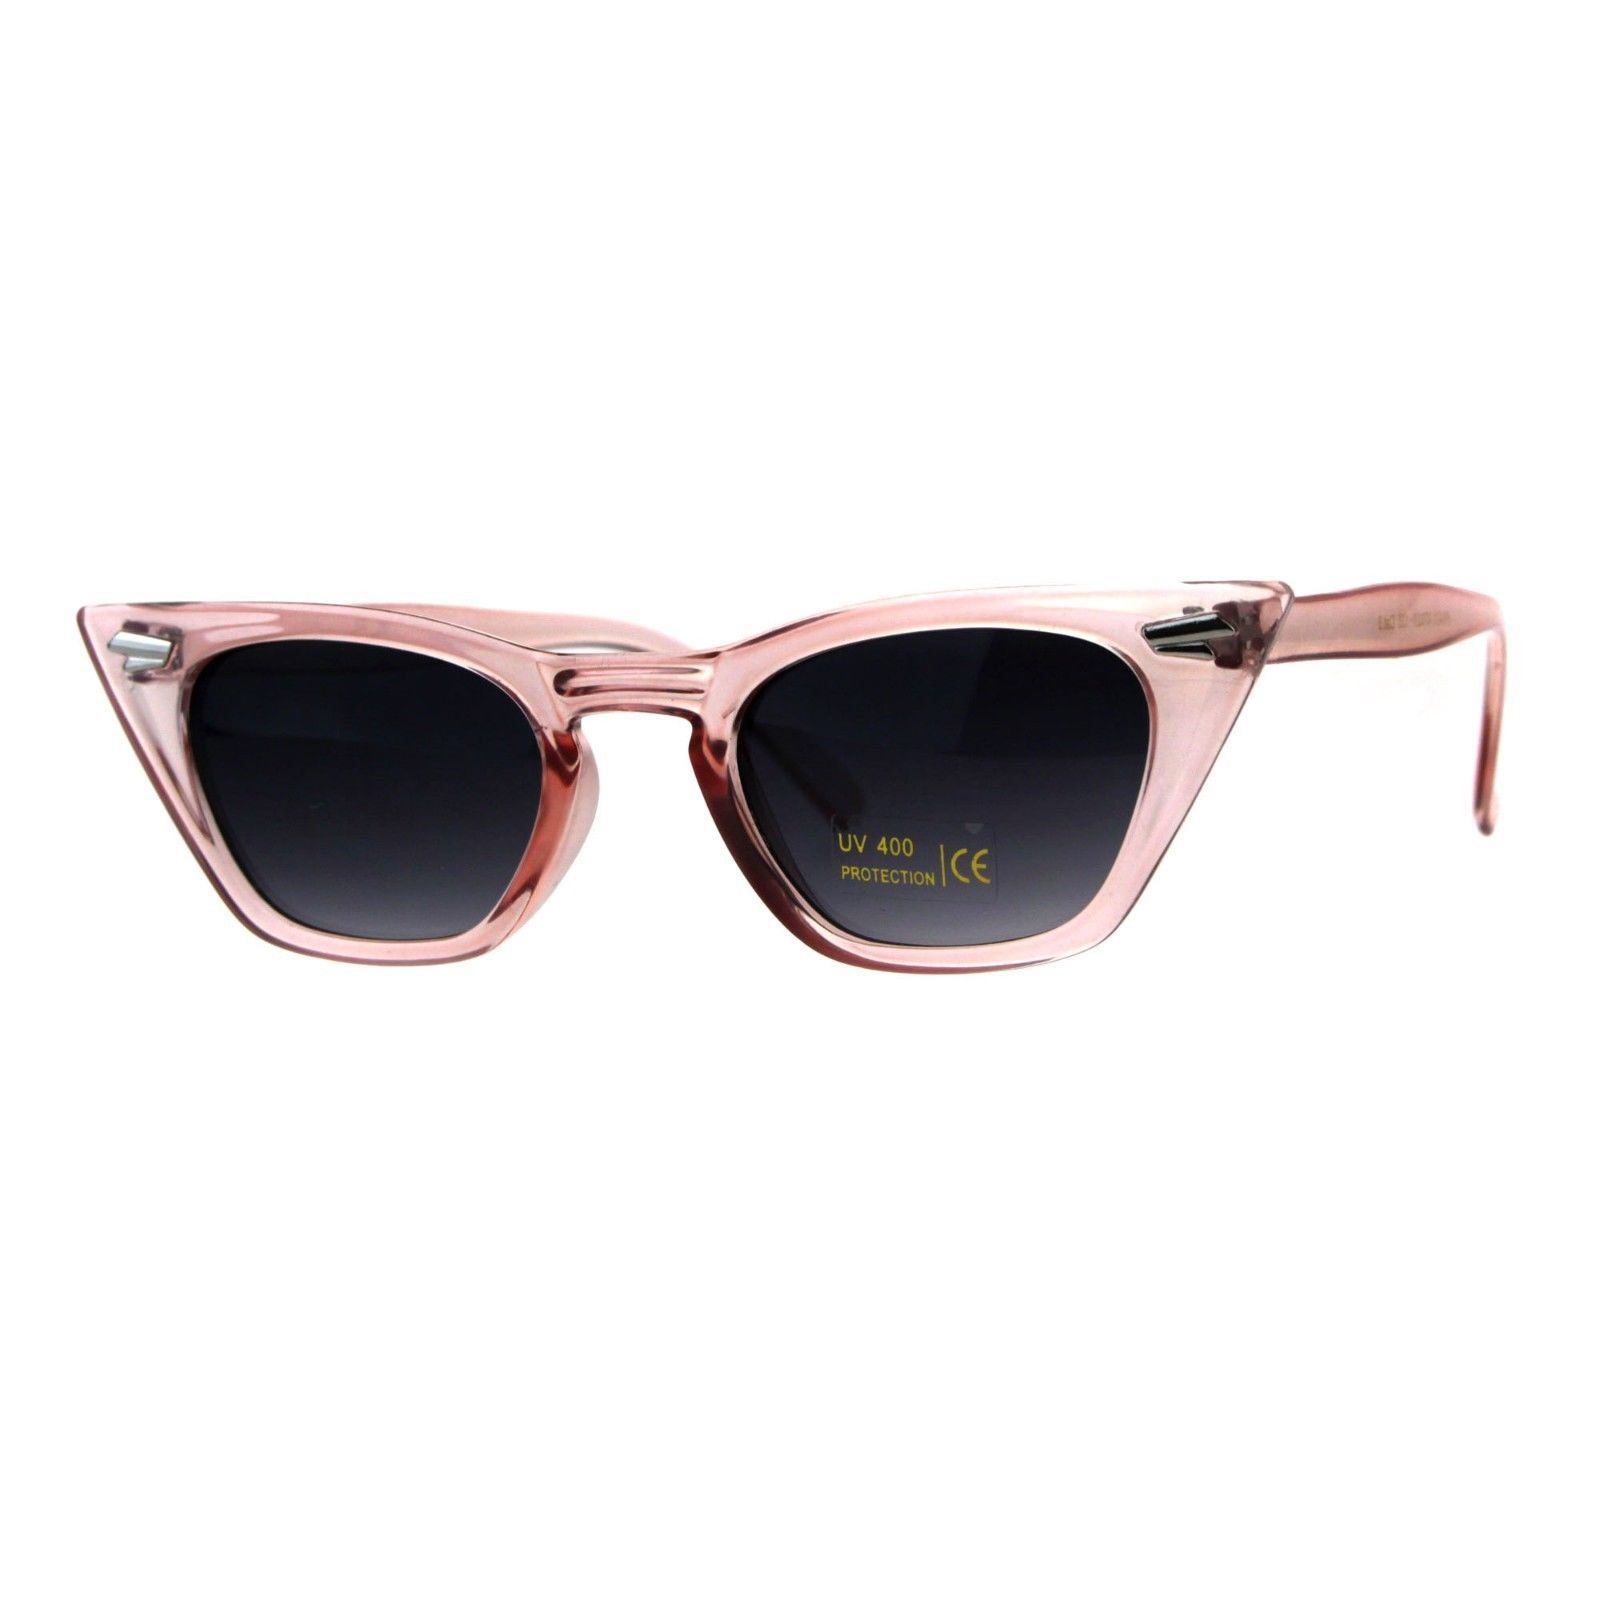 Trapezoid Shape Cateye Sunglasses Womens Vintage Retro Fashion Shades